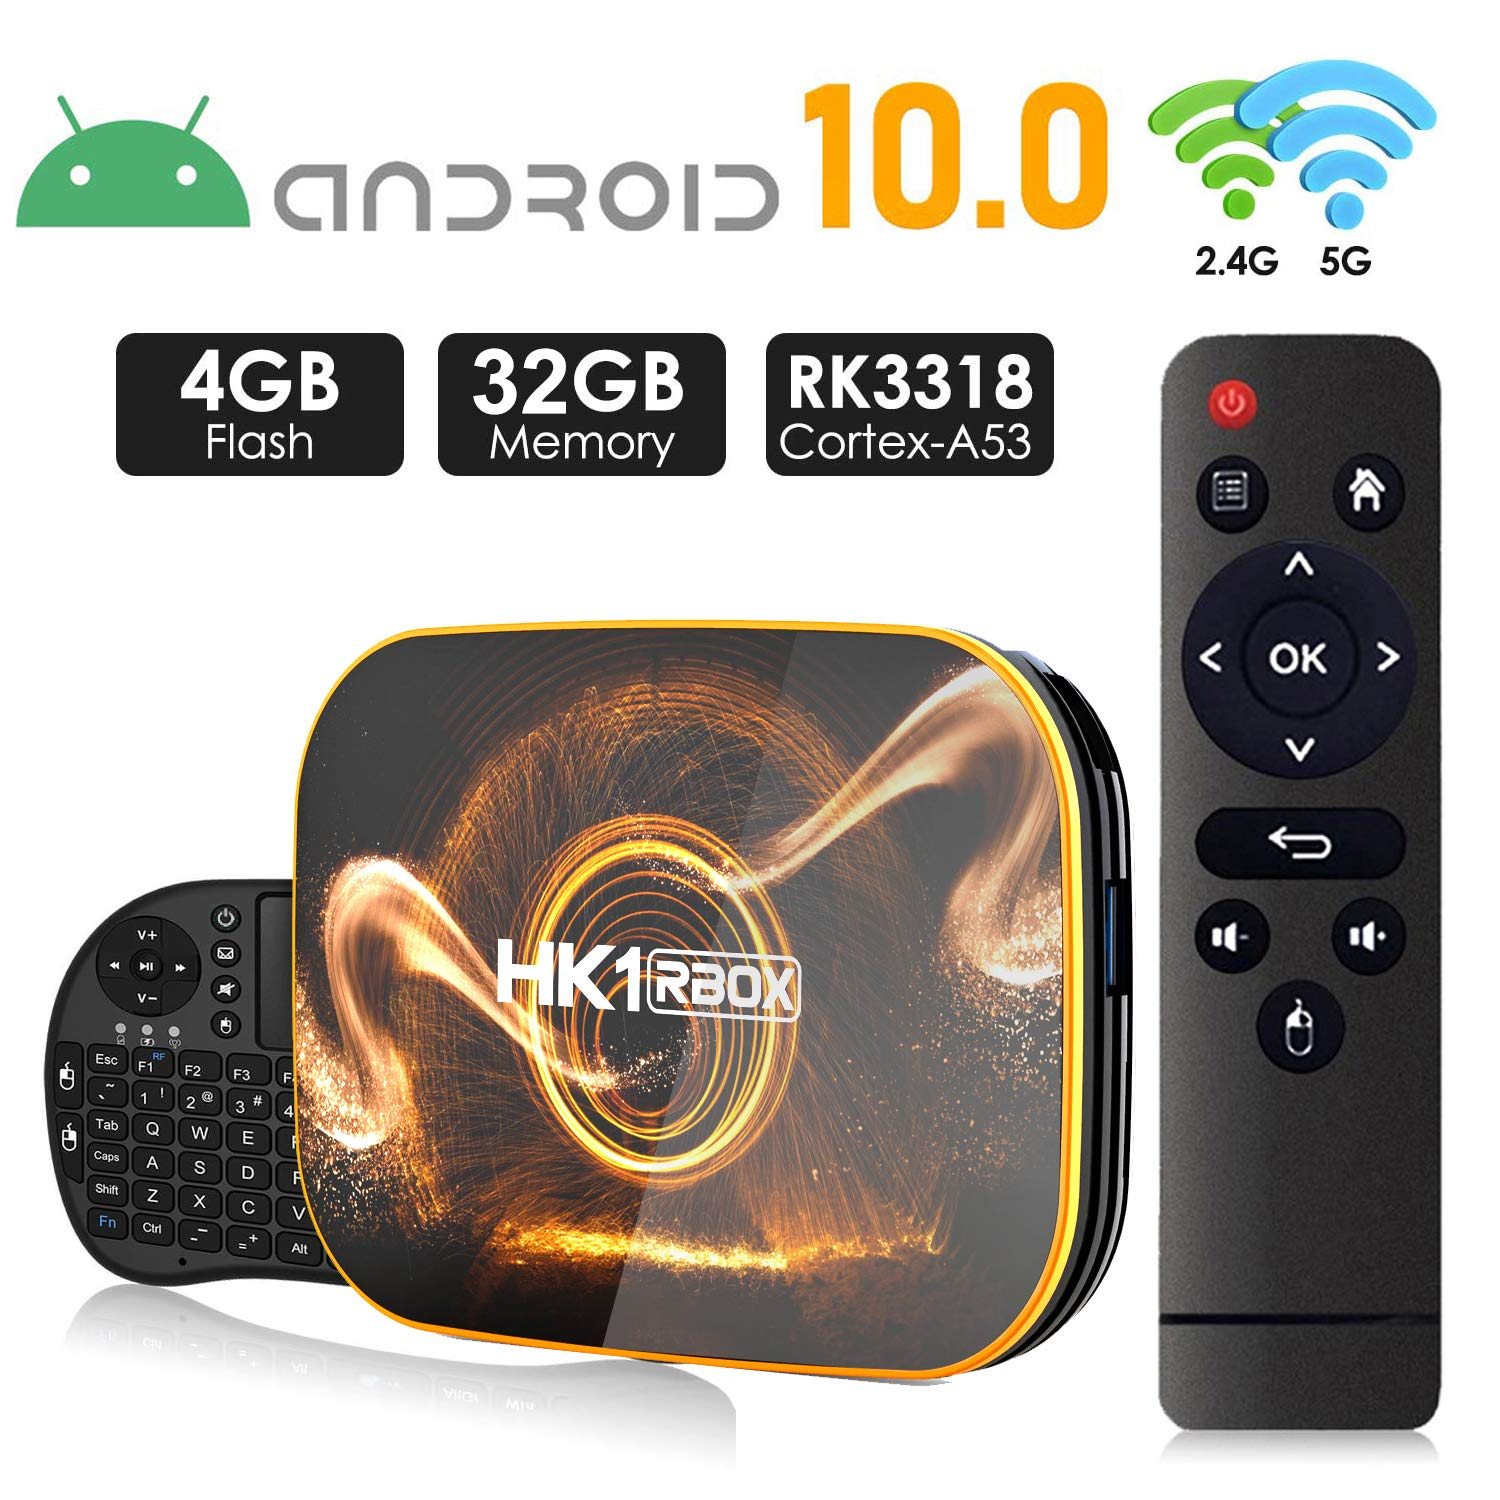 Android 10.0 TV Box 【4GB RAM 32GB ROM】 HK1 Ultra HD 4K Smart TV Box RK3318